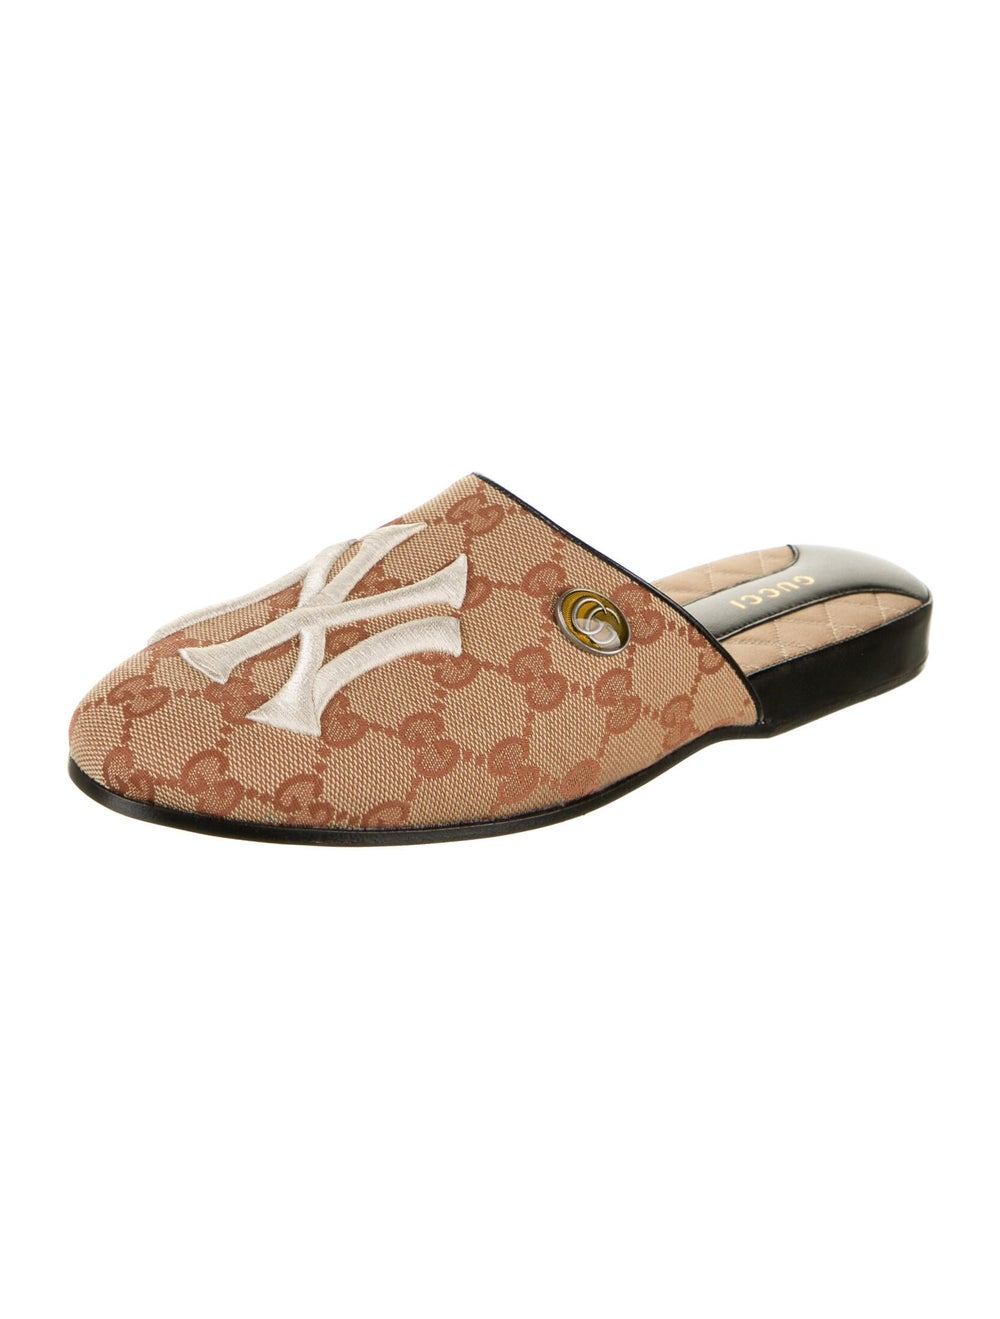 Gucci NY Yankees GG Canvas Mules w/ Tags - image 2